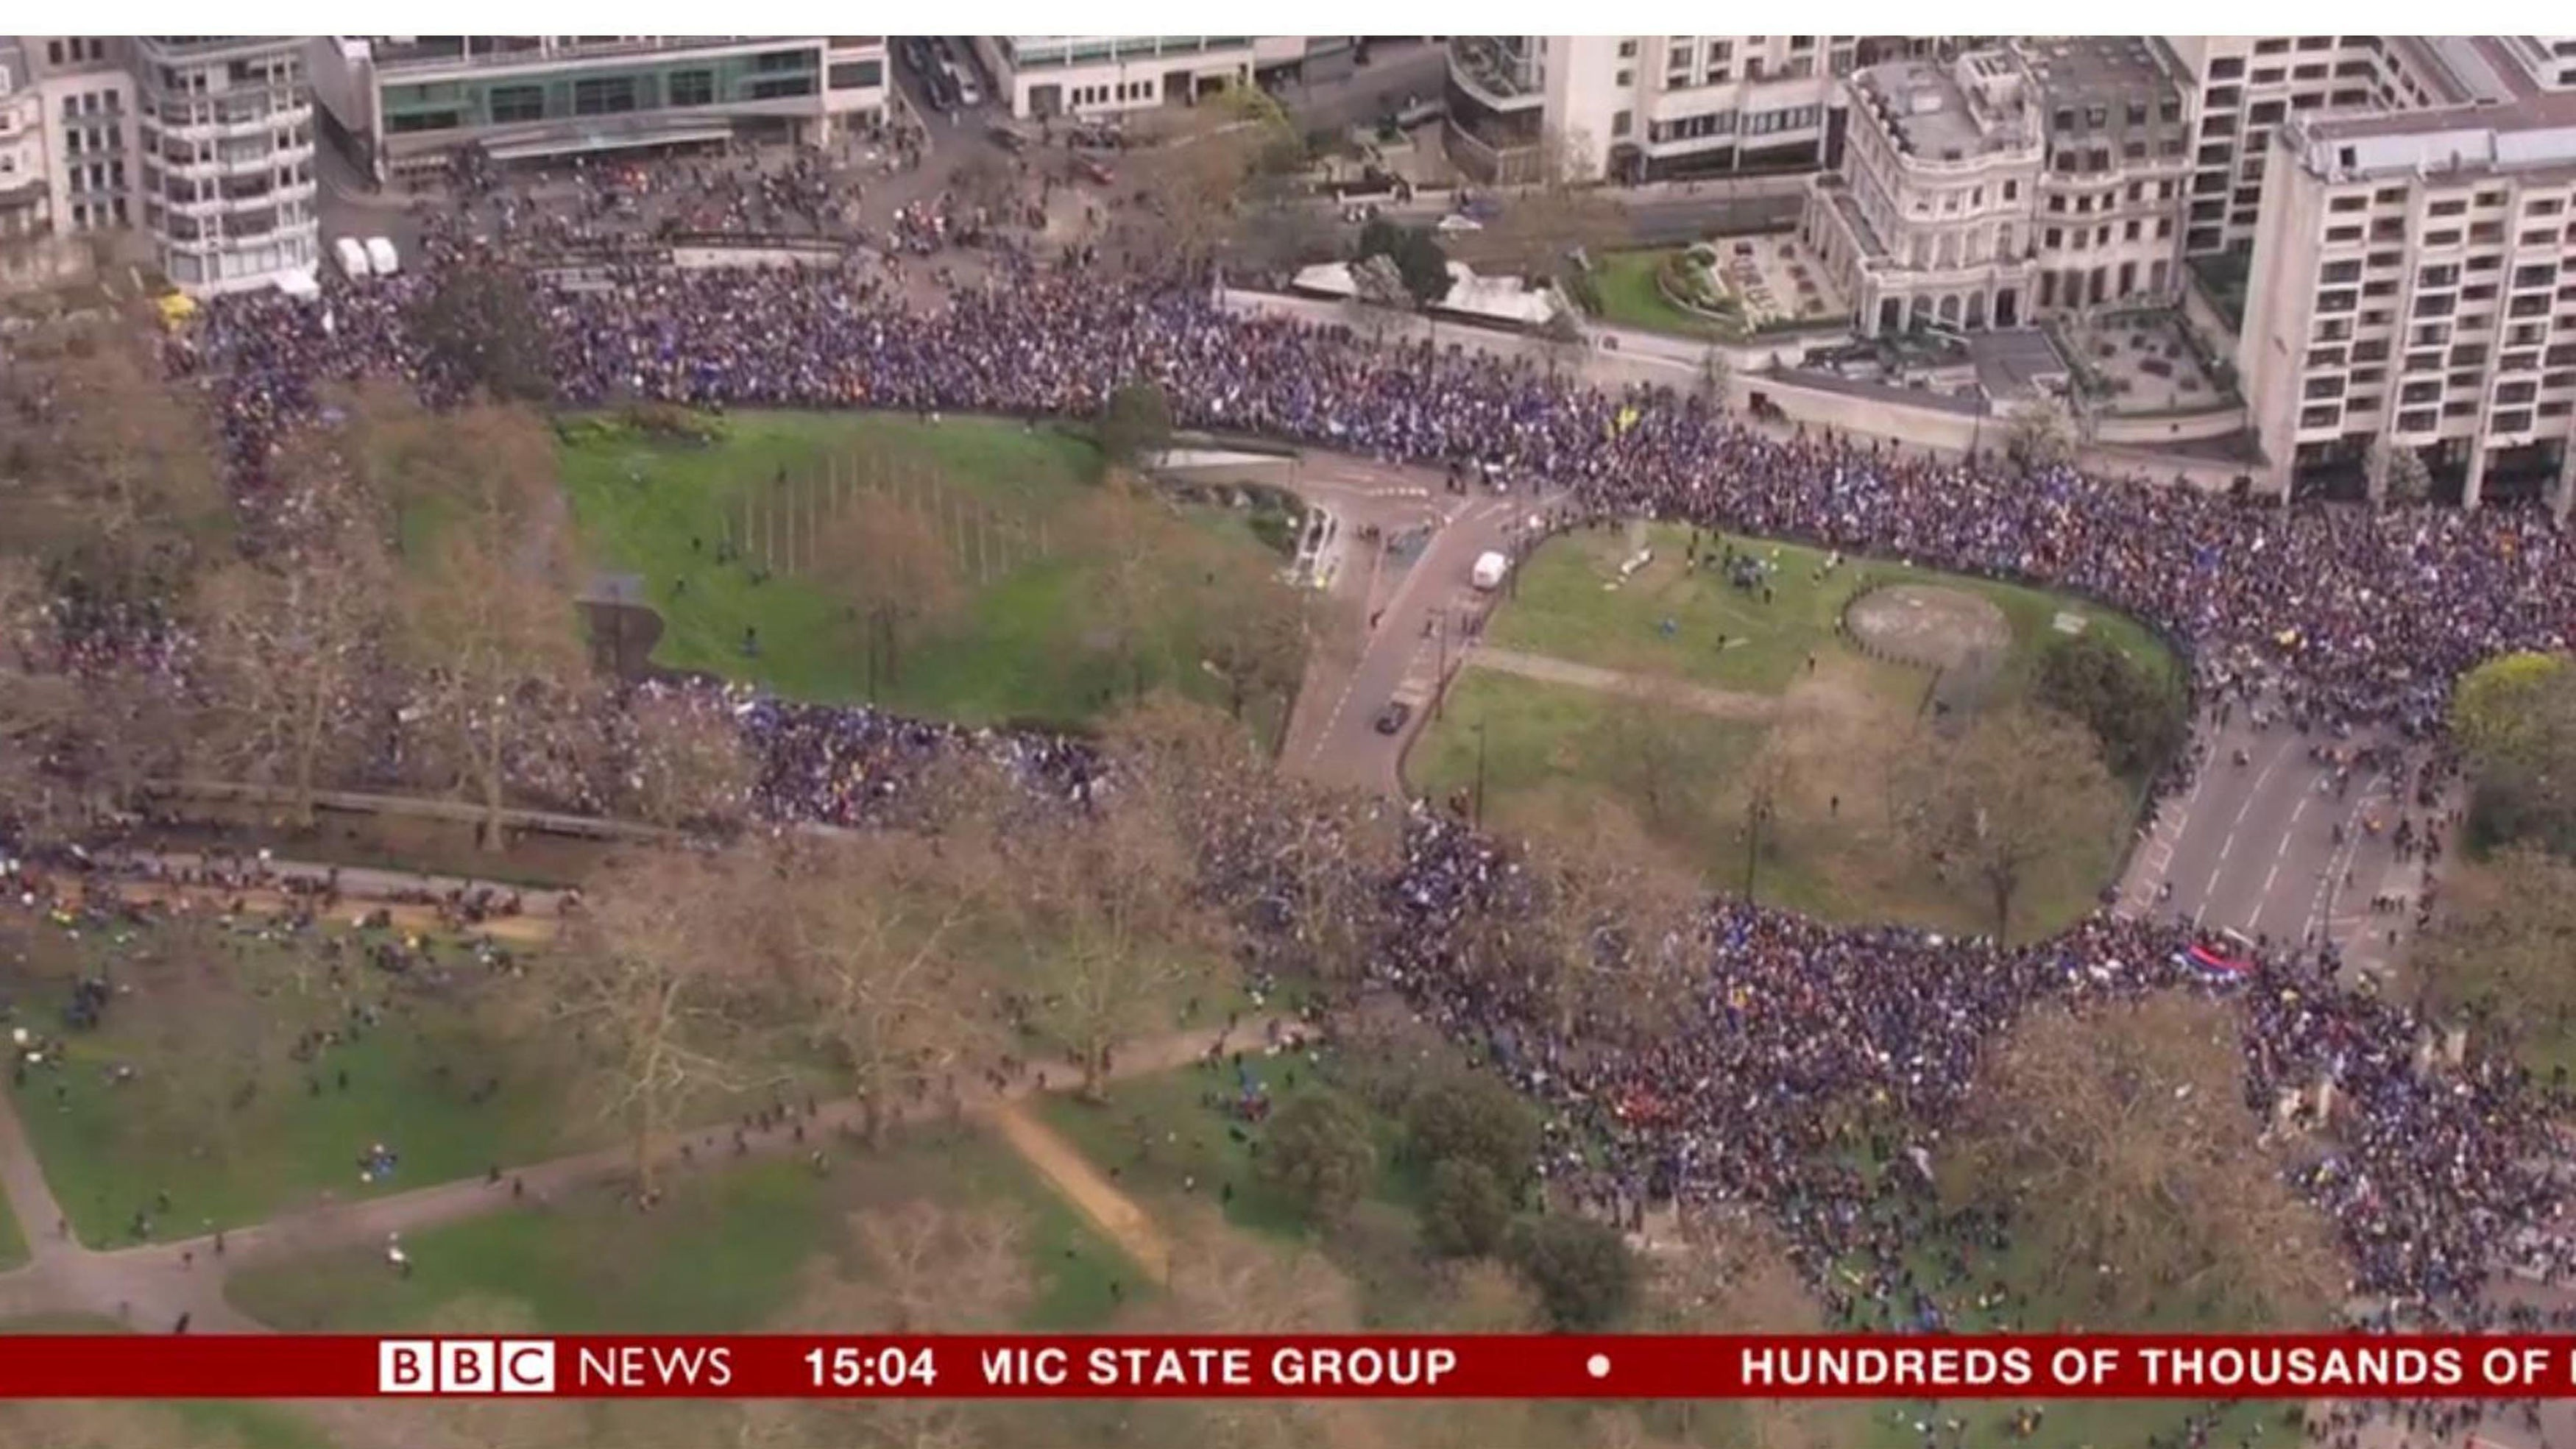 Screengrab taken from BBC News of an aerial view of the anti-Brexit campaigners marching in London